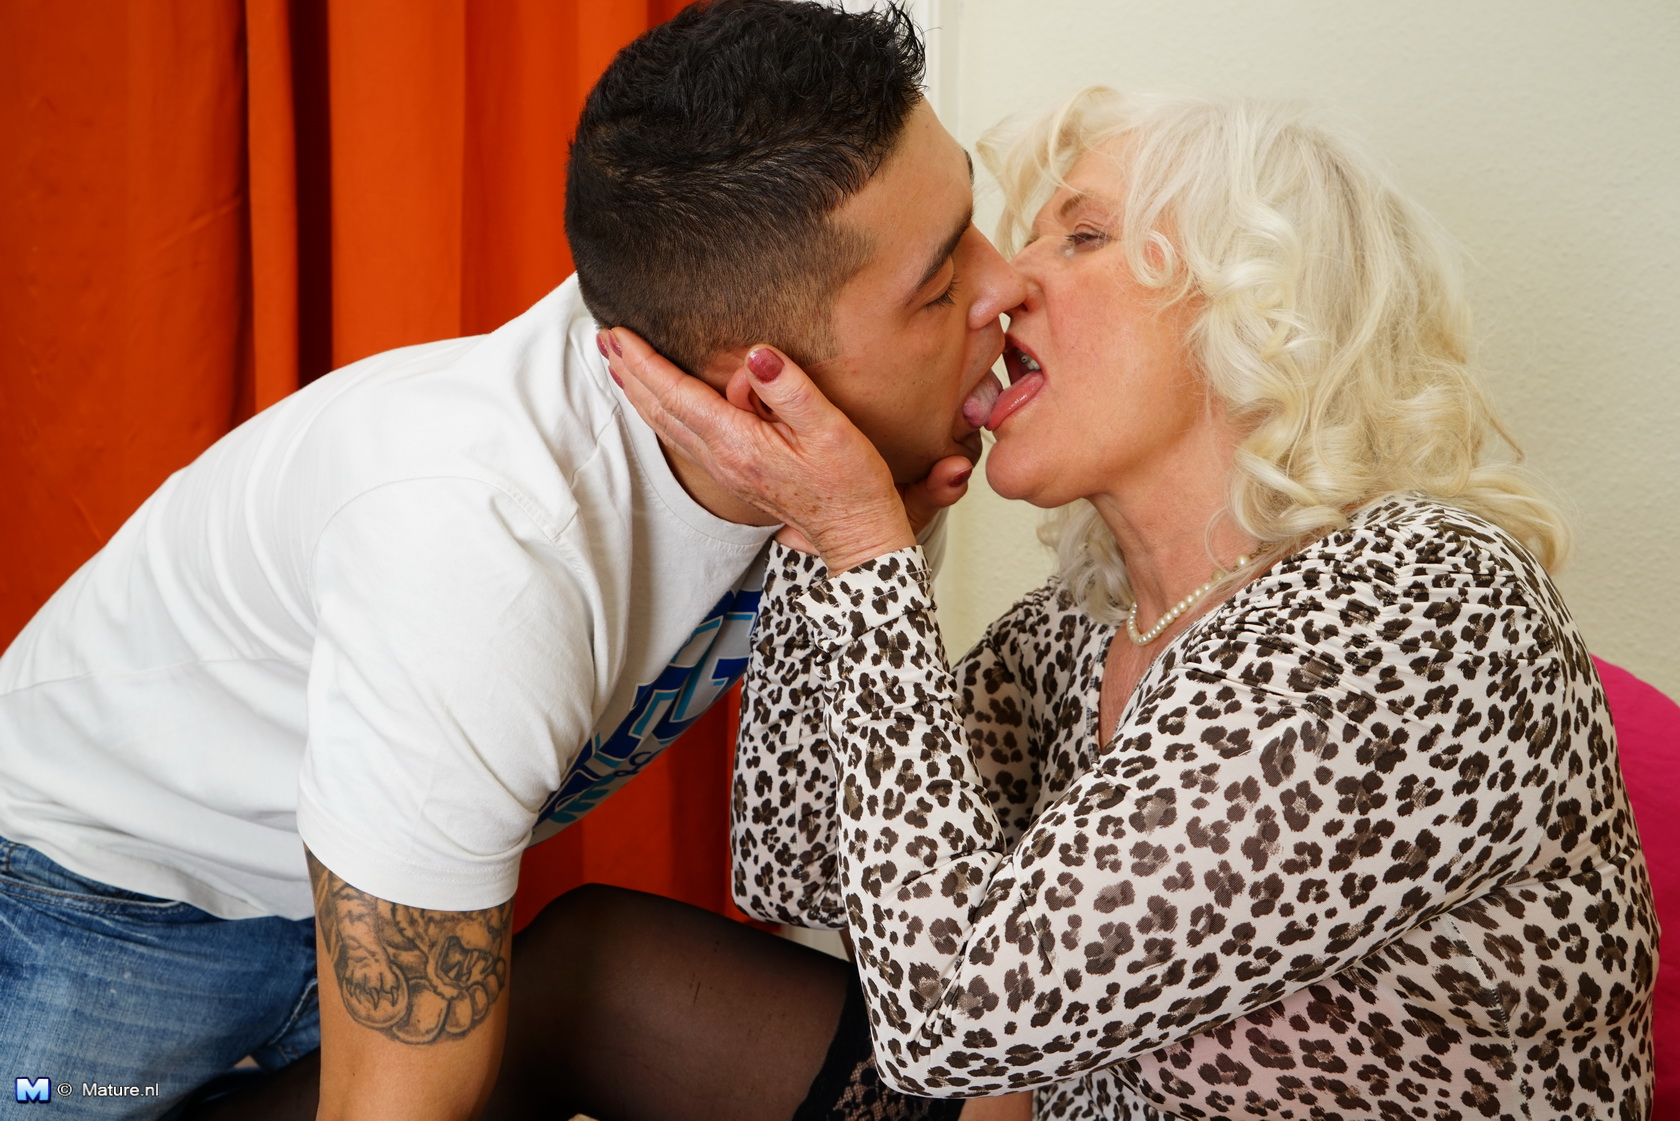 70 years old ugly granny gives a unforgetable blowjob to her grandsun and swallows all